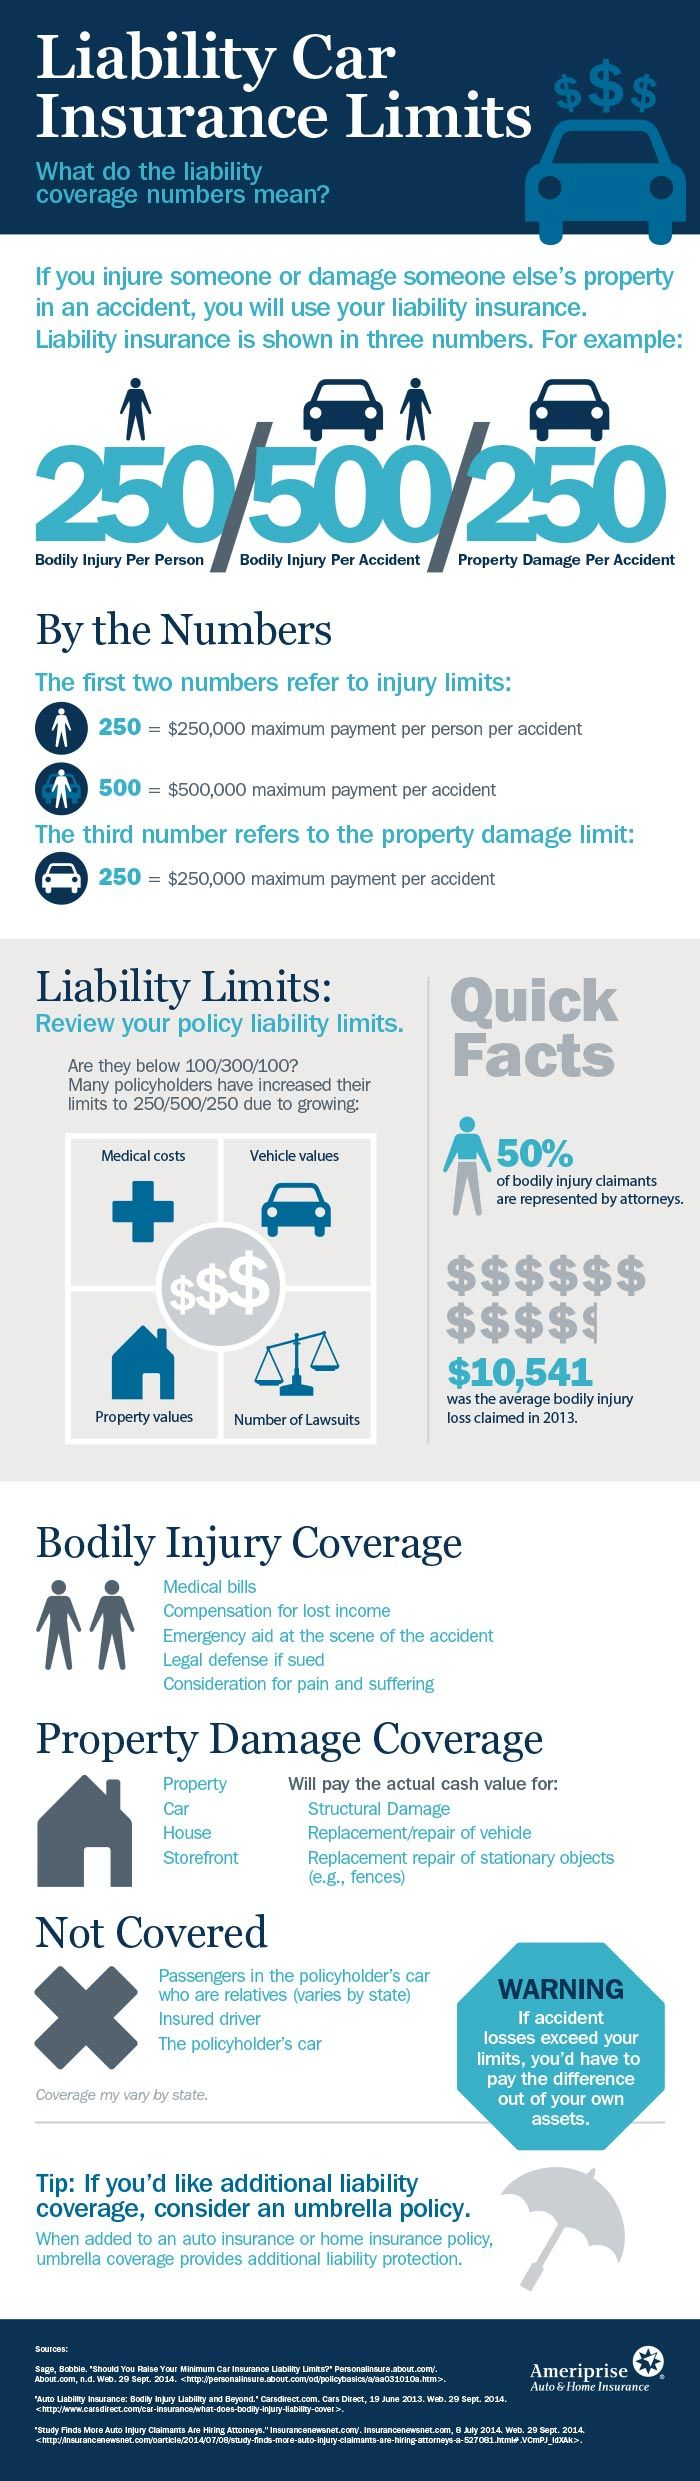 Have you adjusted your liability car insurance limits? This infographic explains the coverage available per person, per accident and property damage.